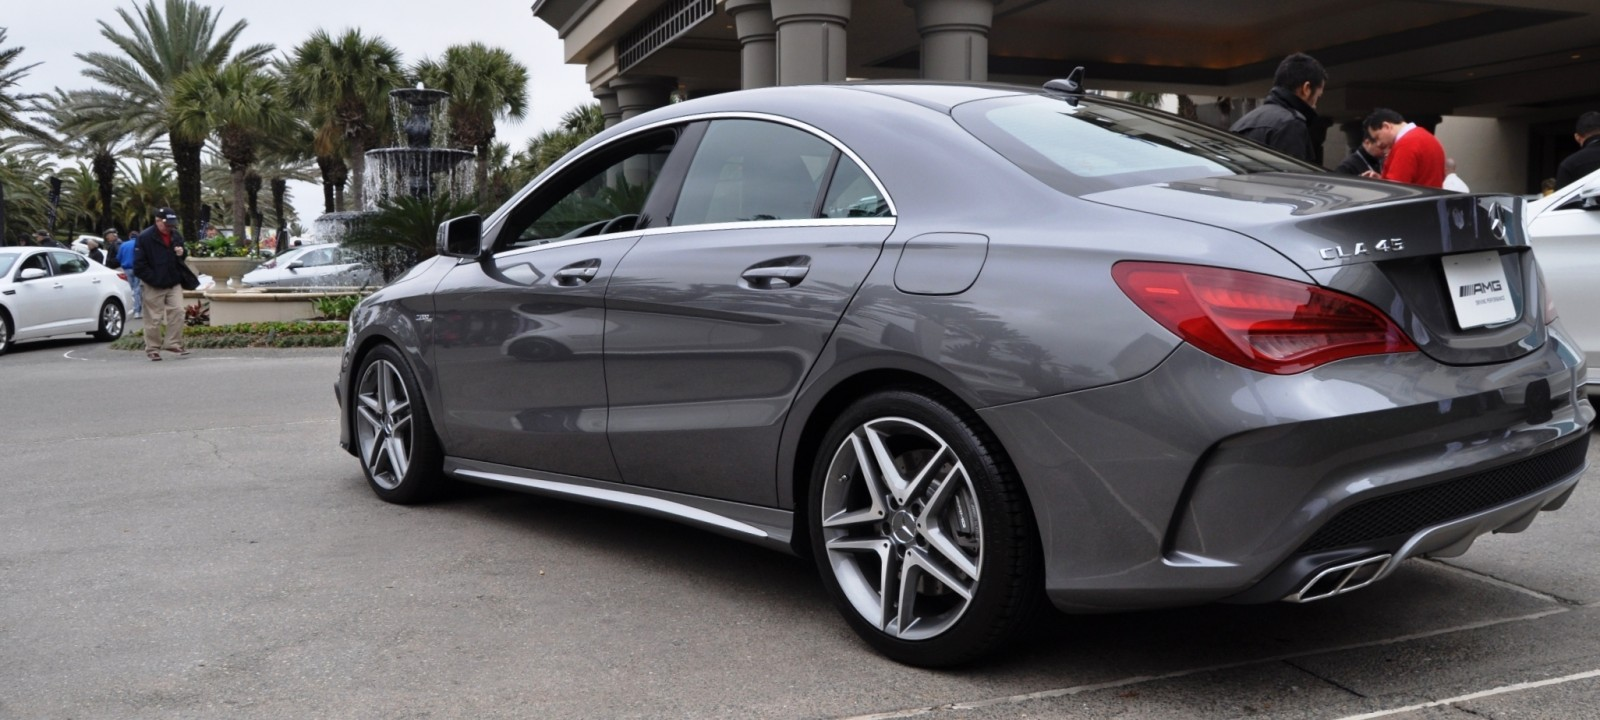 the sold out 2015 mercedes benz cla45 amg design walkaround exhaust note videos. Black Bedroom Furniture Sets. Home Design Ideas